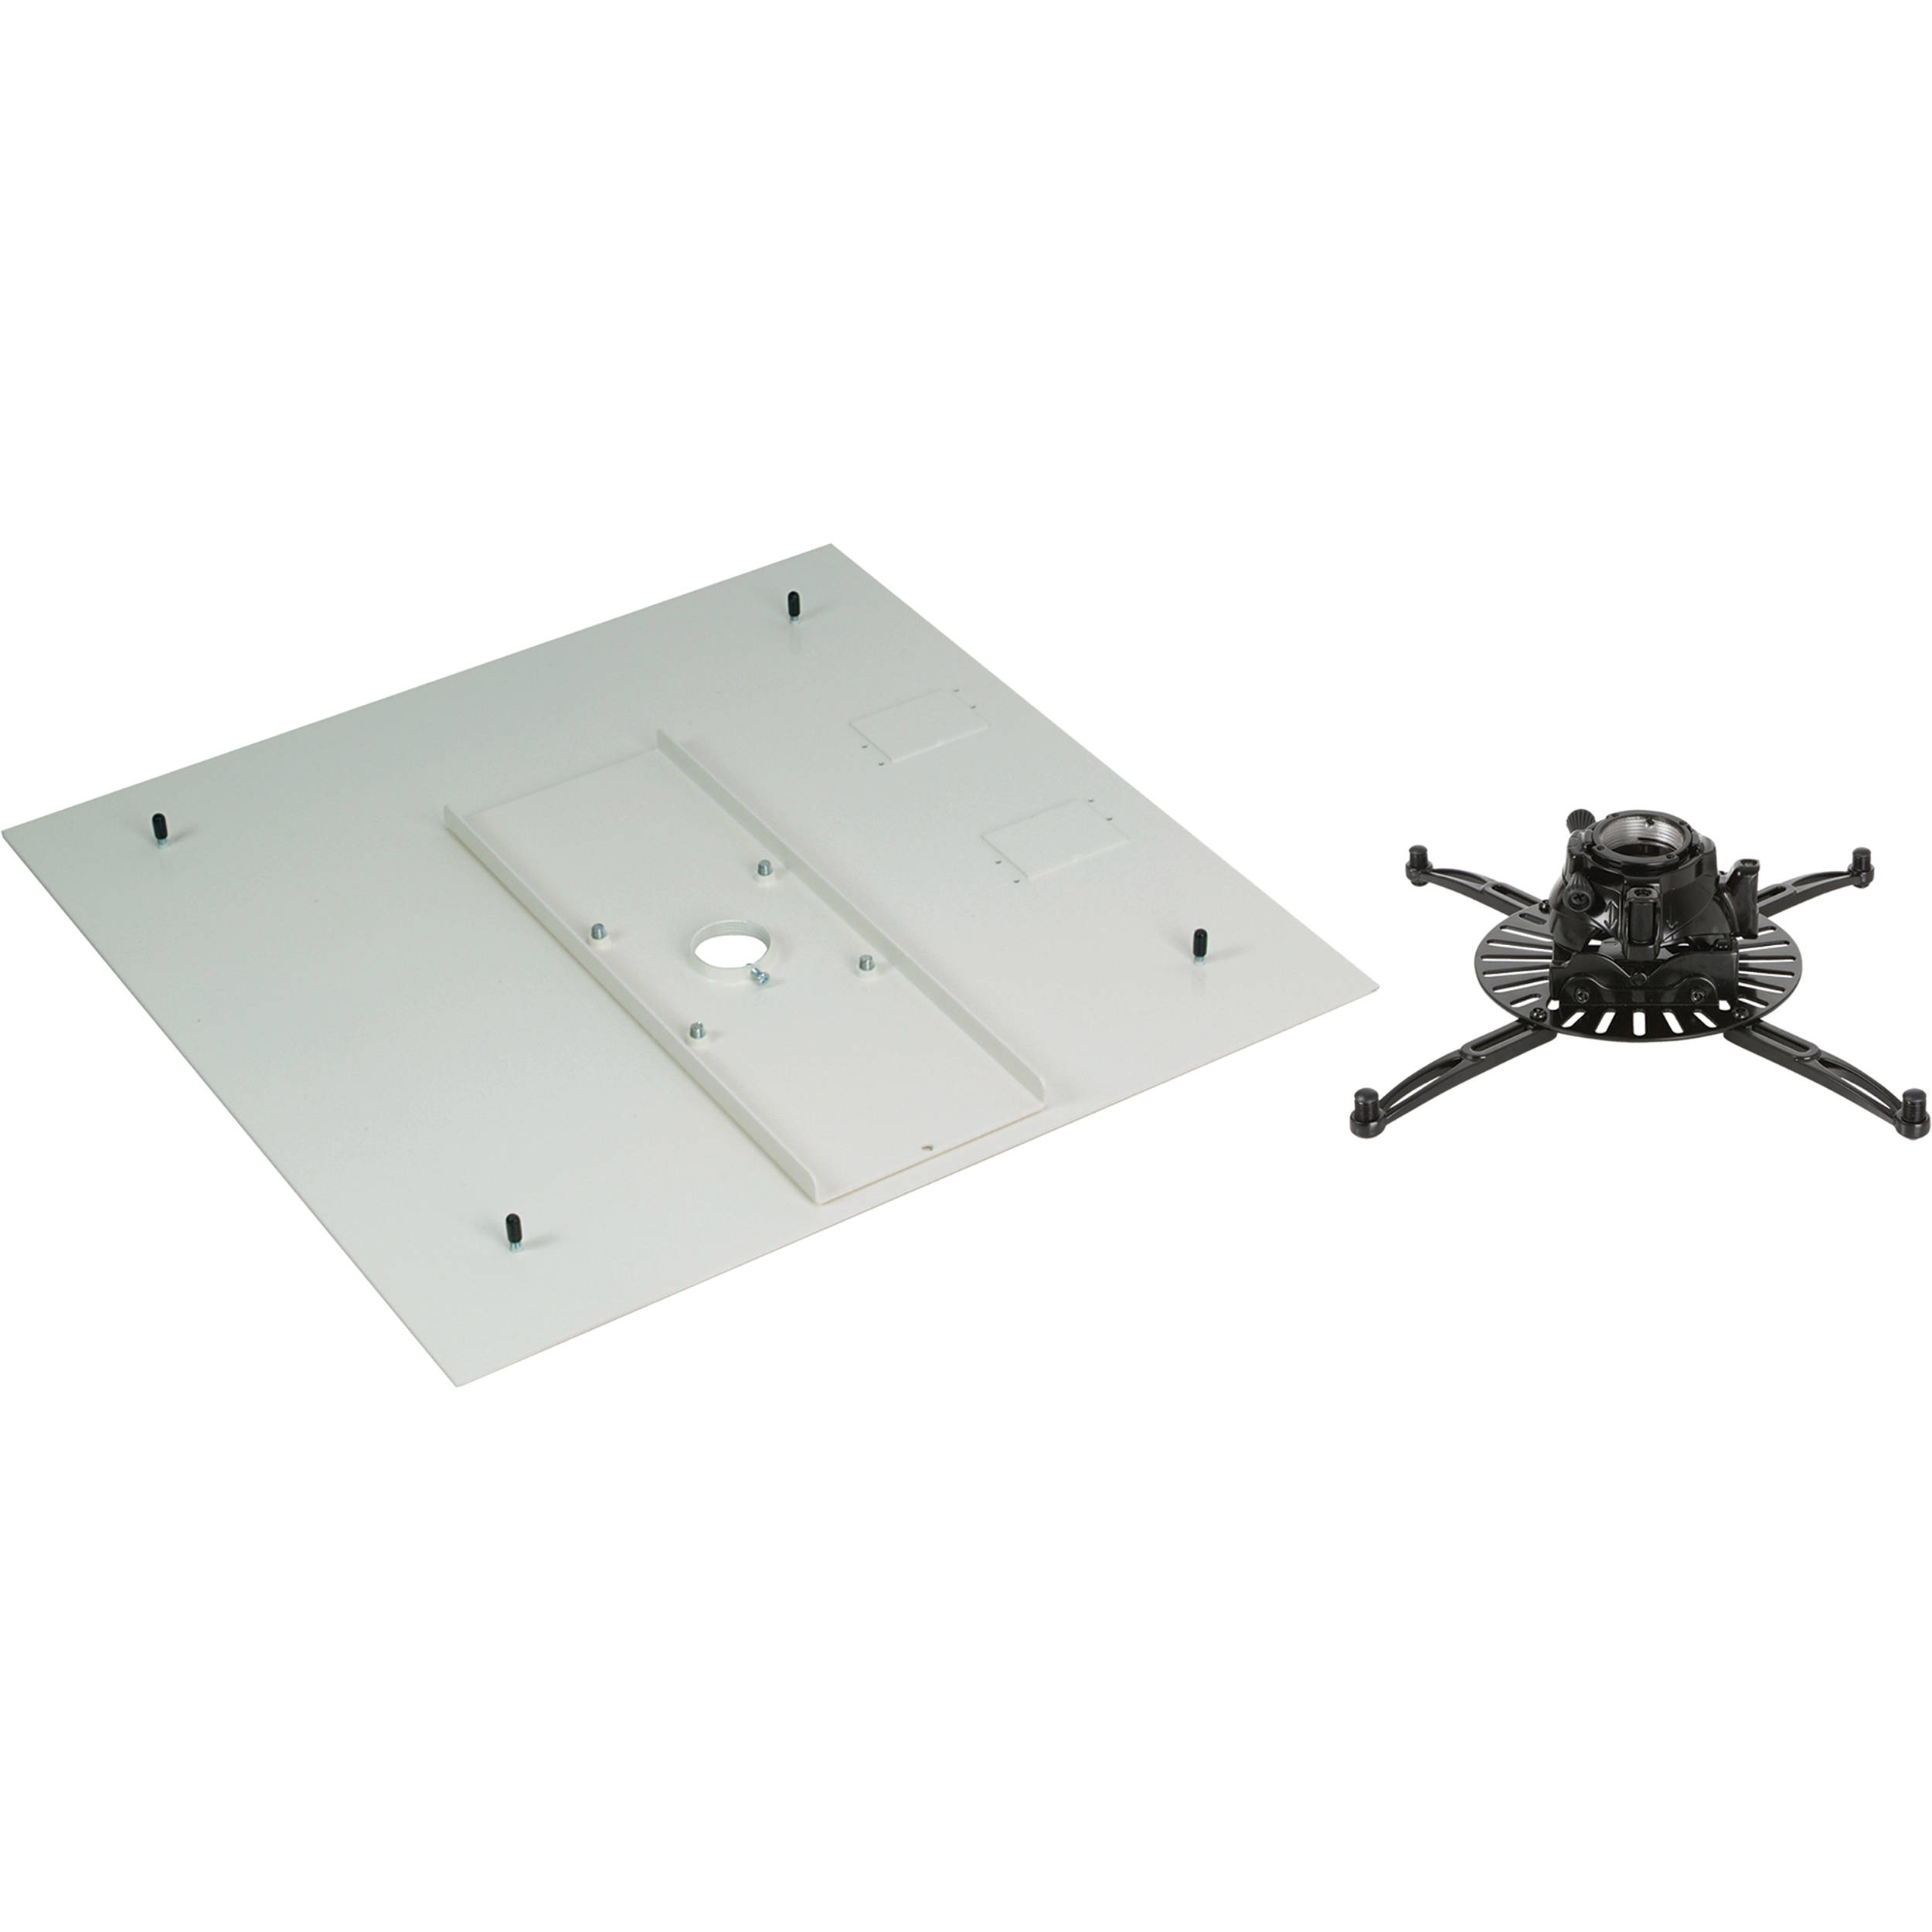 Premier Mounts Ftp Projector Mount With Pp Fcma Full Tile False Ceiling Adapter